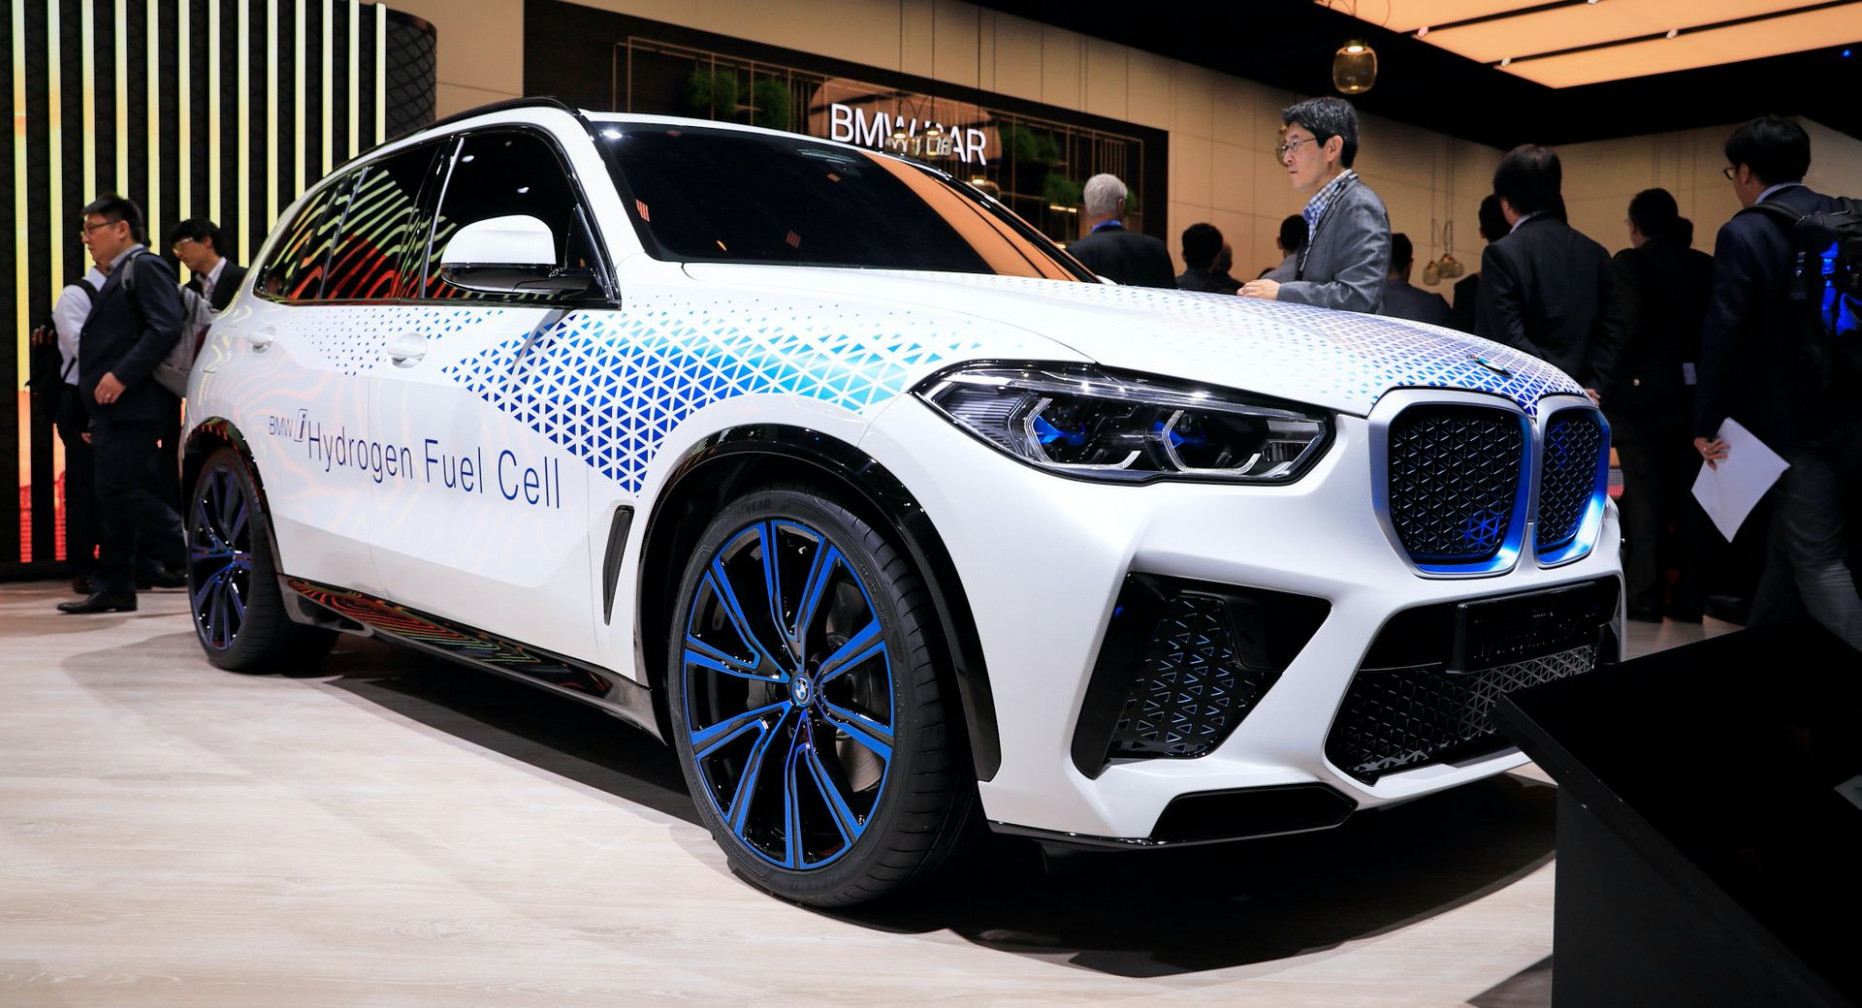 Redesign and Concept BMW Suv 2022